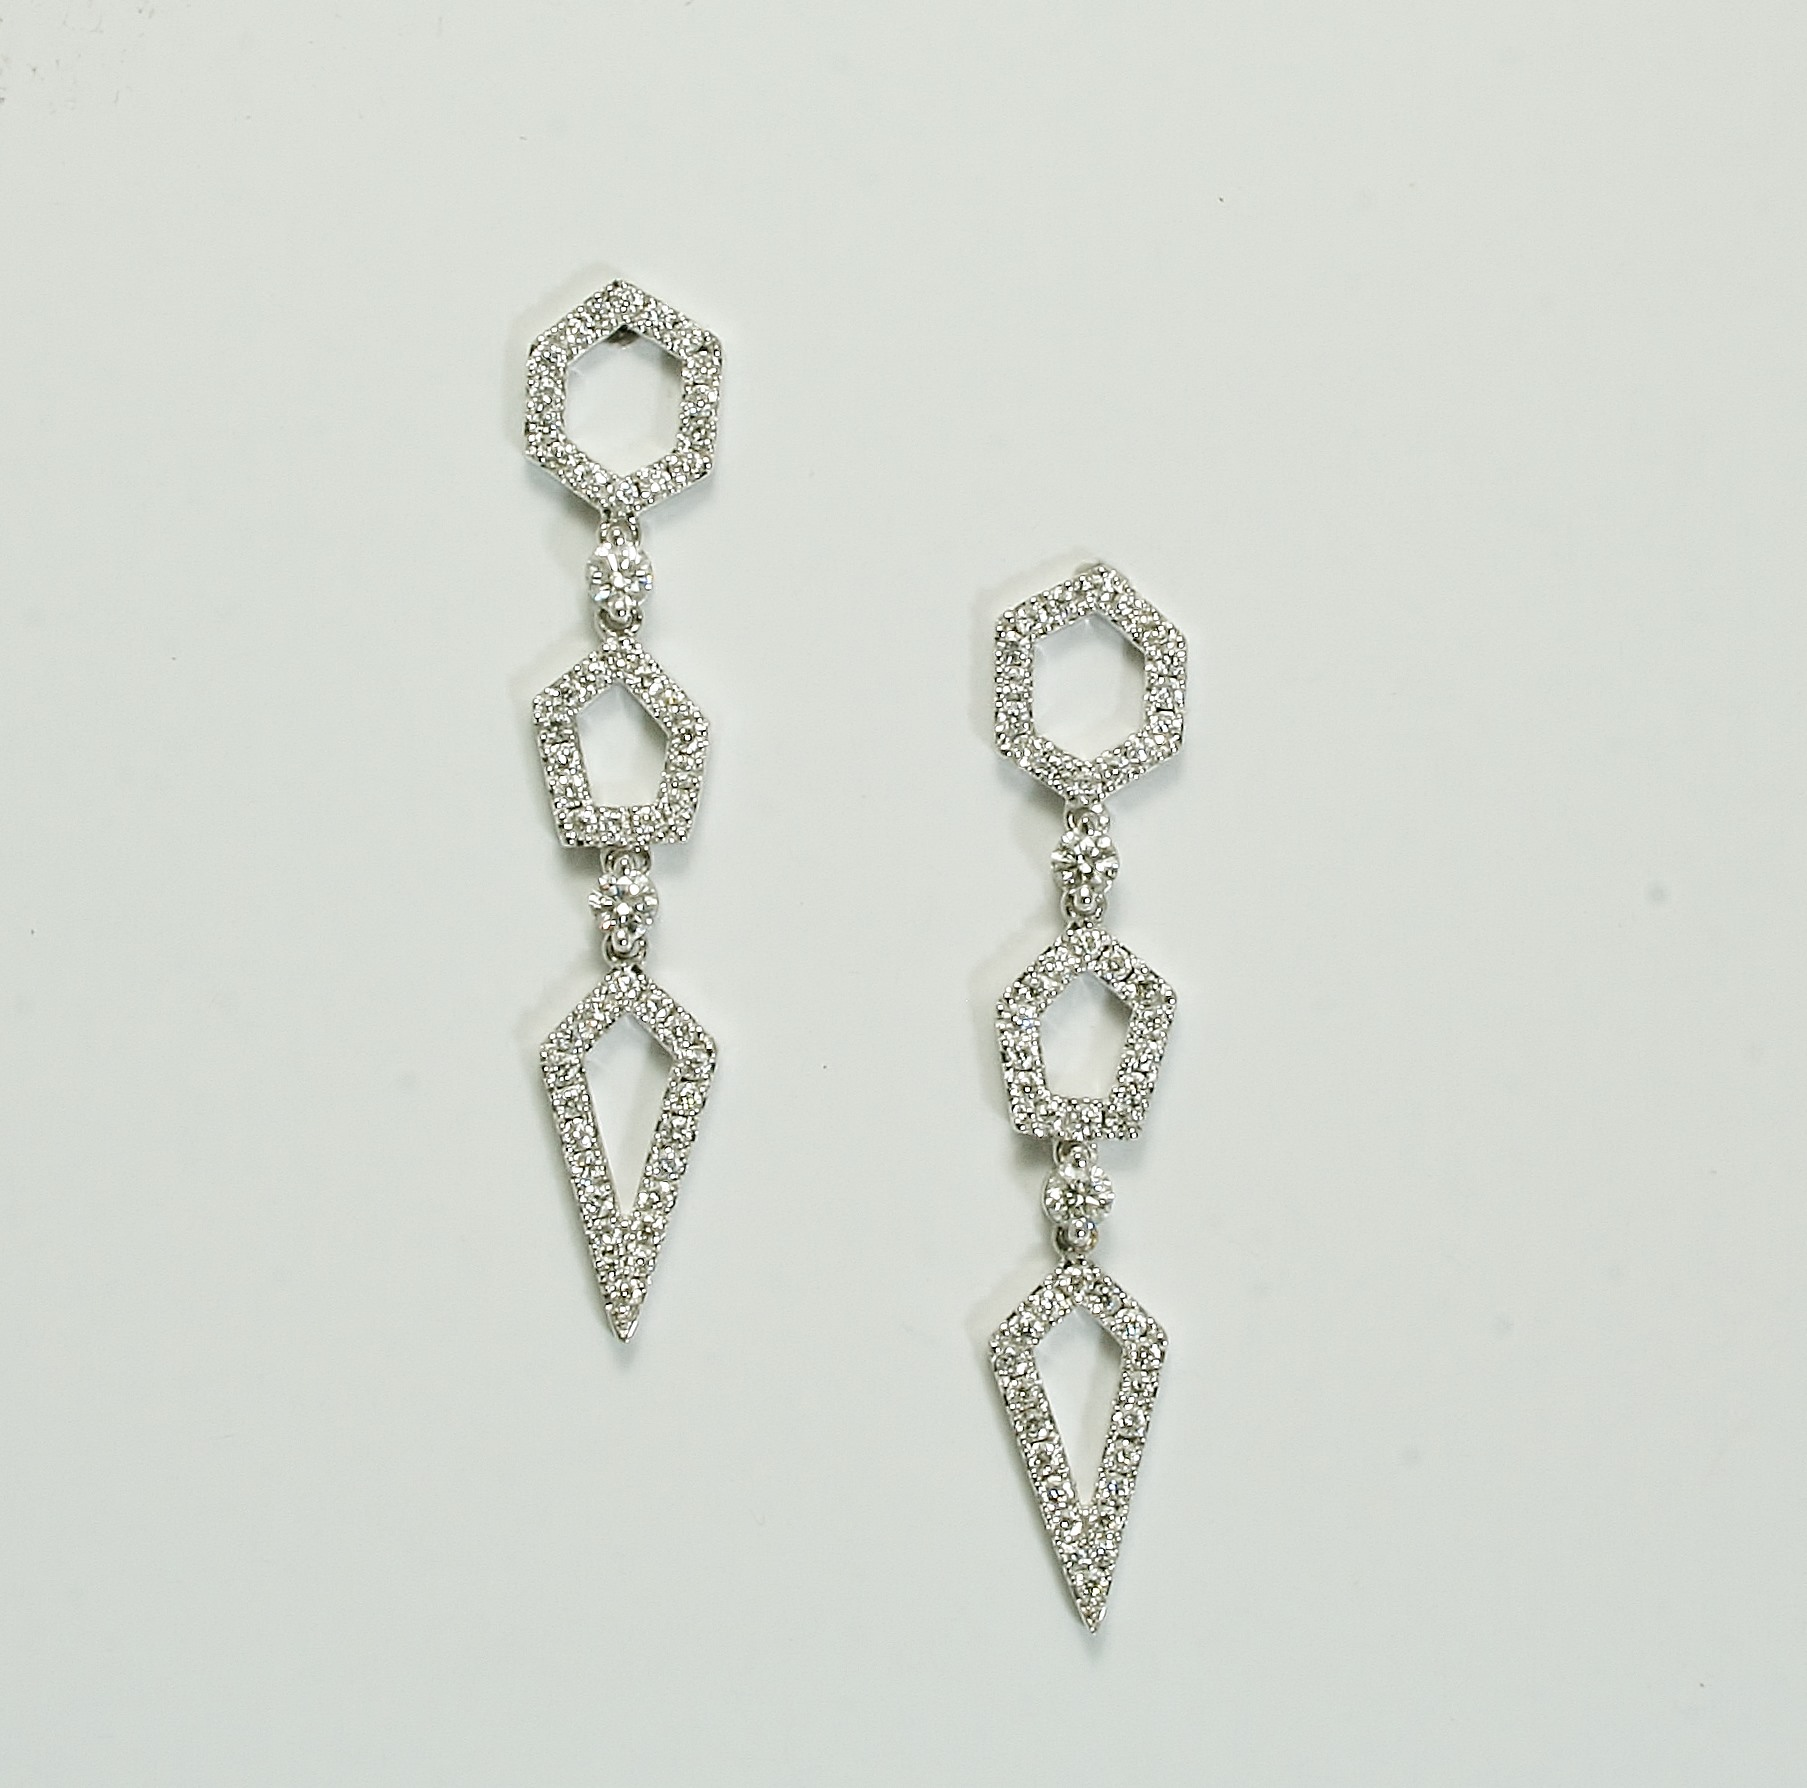 Art Deco Style Earrings Uk Art Deco Style Diamond Pendant Earrings Furr Co